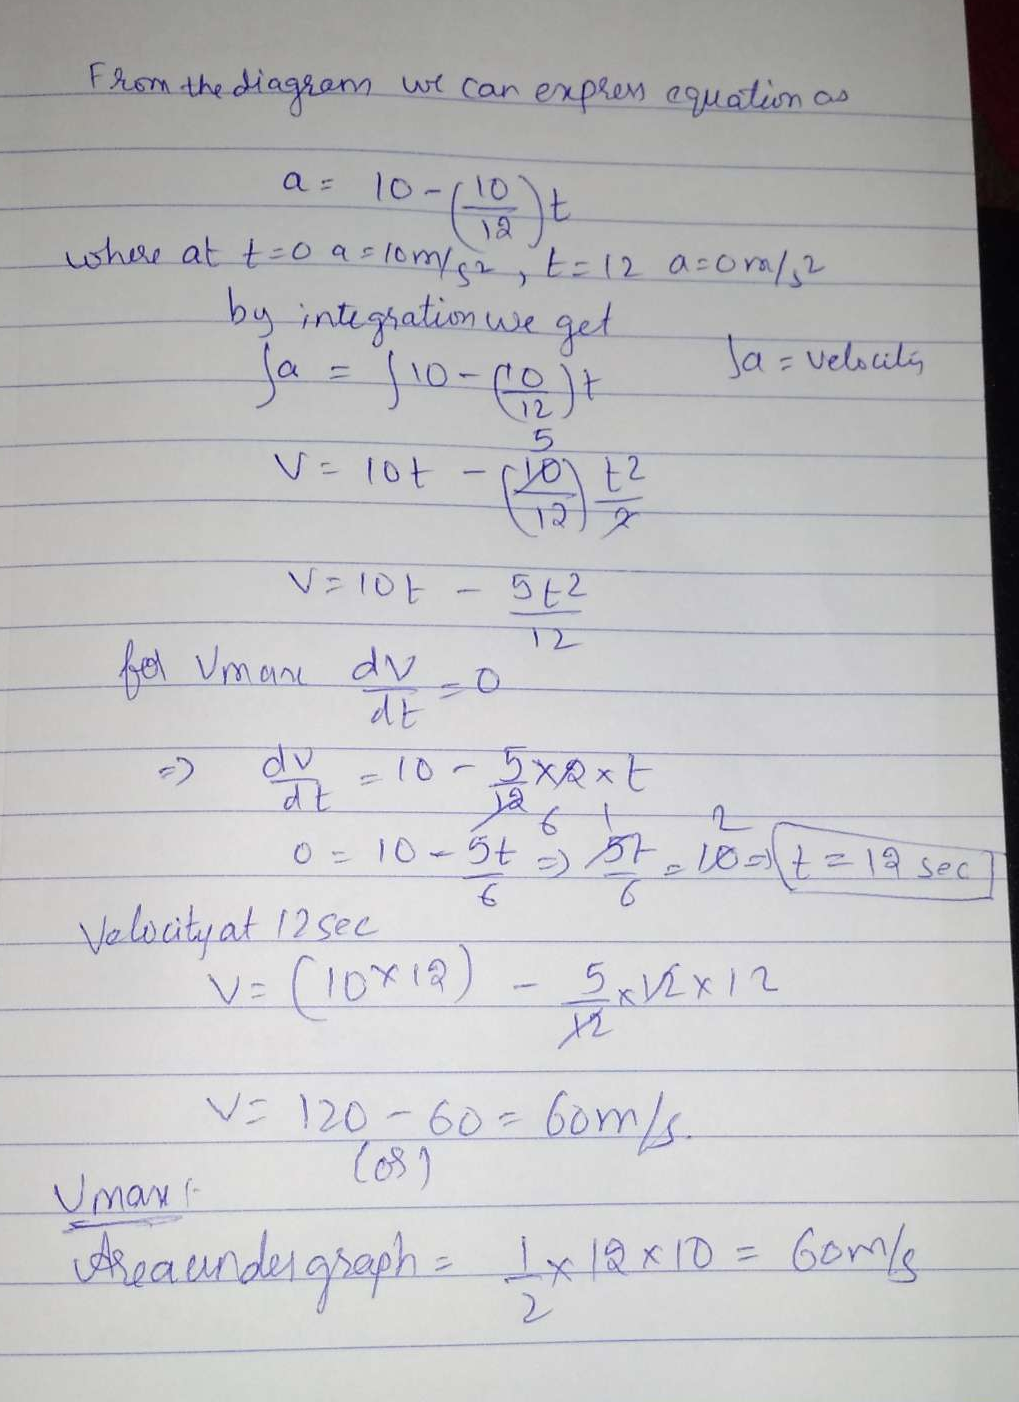 A particle starting from rest undergoes a rectilinear motion with acceleration a. The variation of a with time t is shown below. The maximum velocity attained by the particle during its motion is